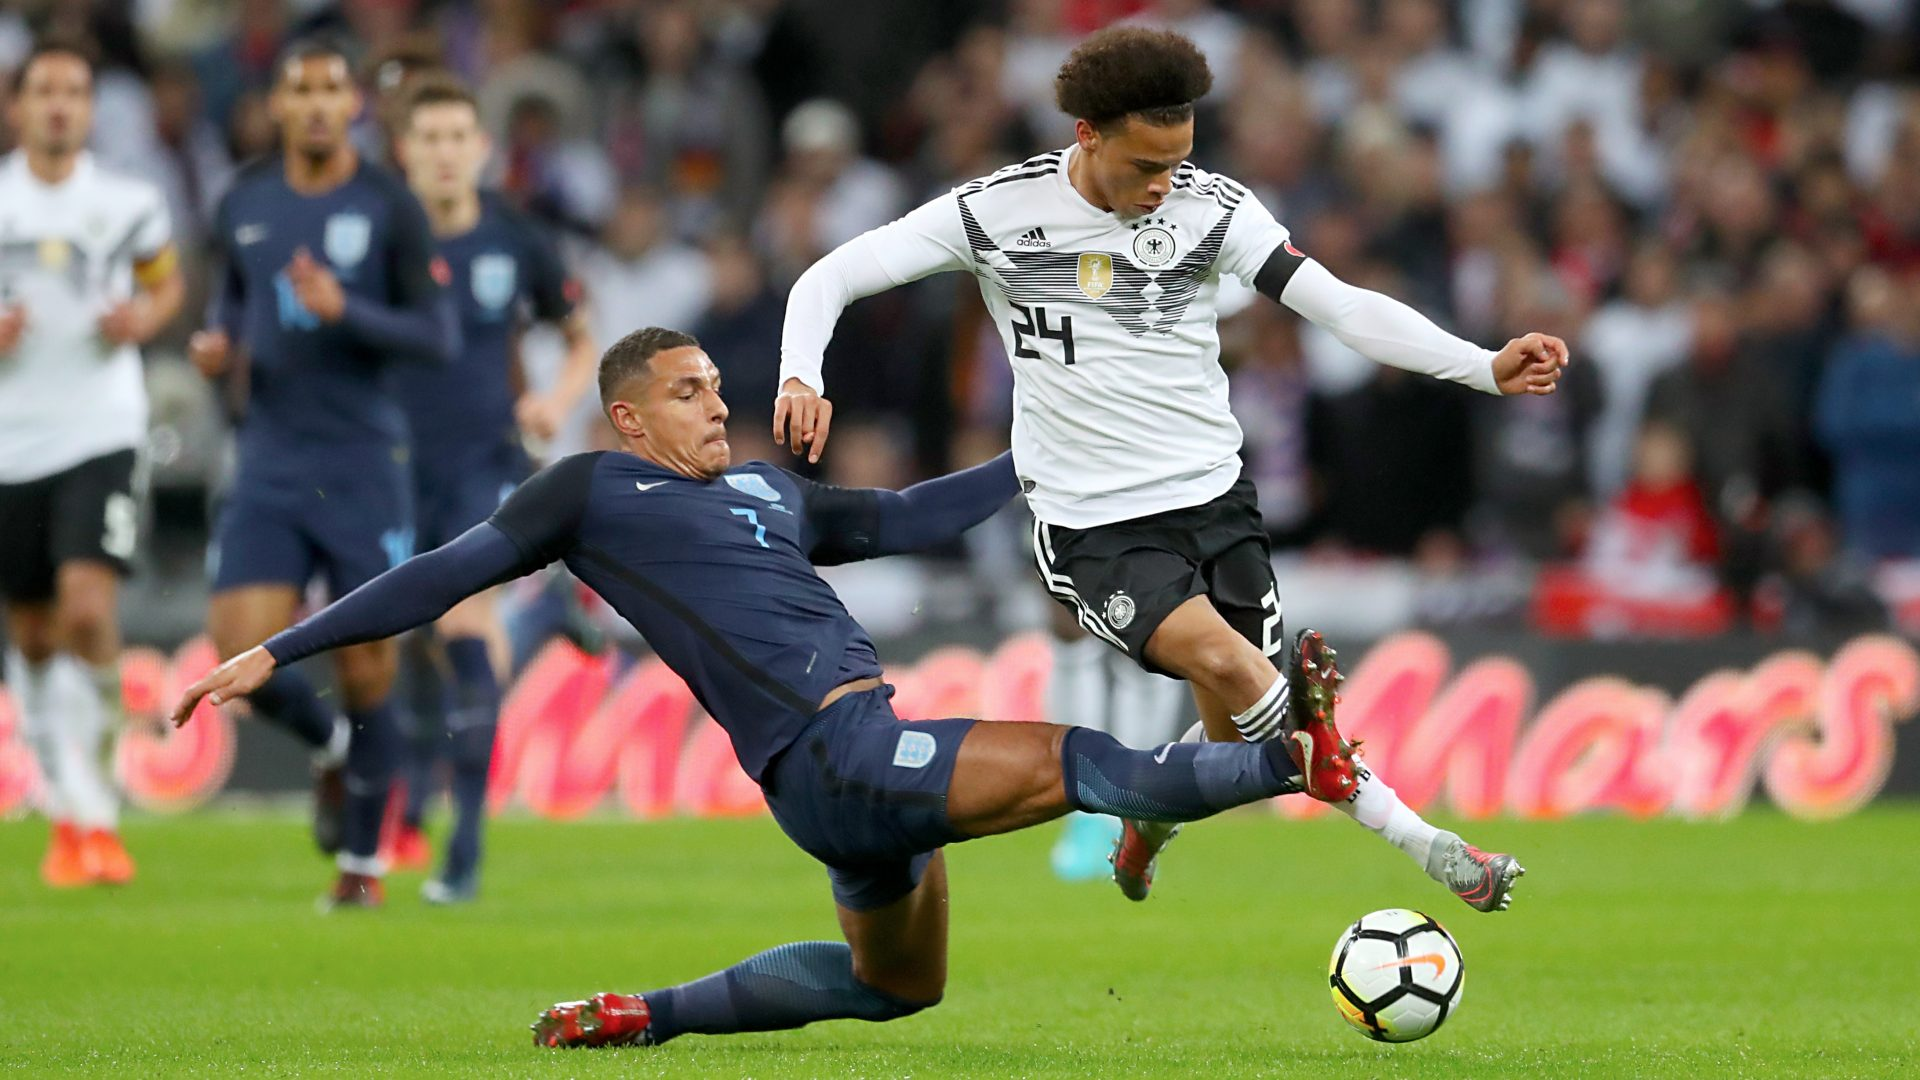 Leroy Sane hit the crossbar for Germany